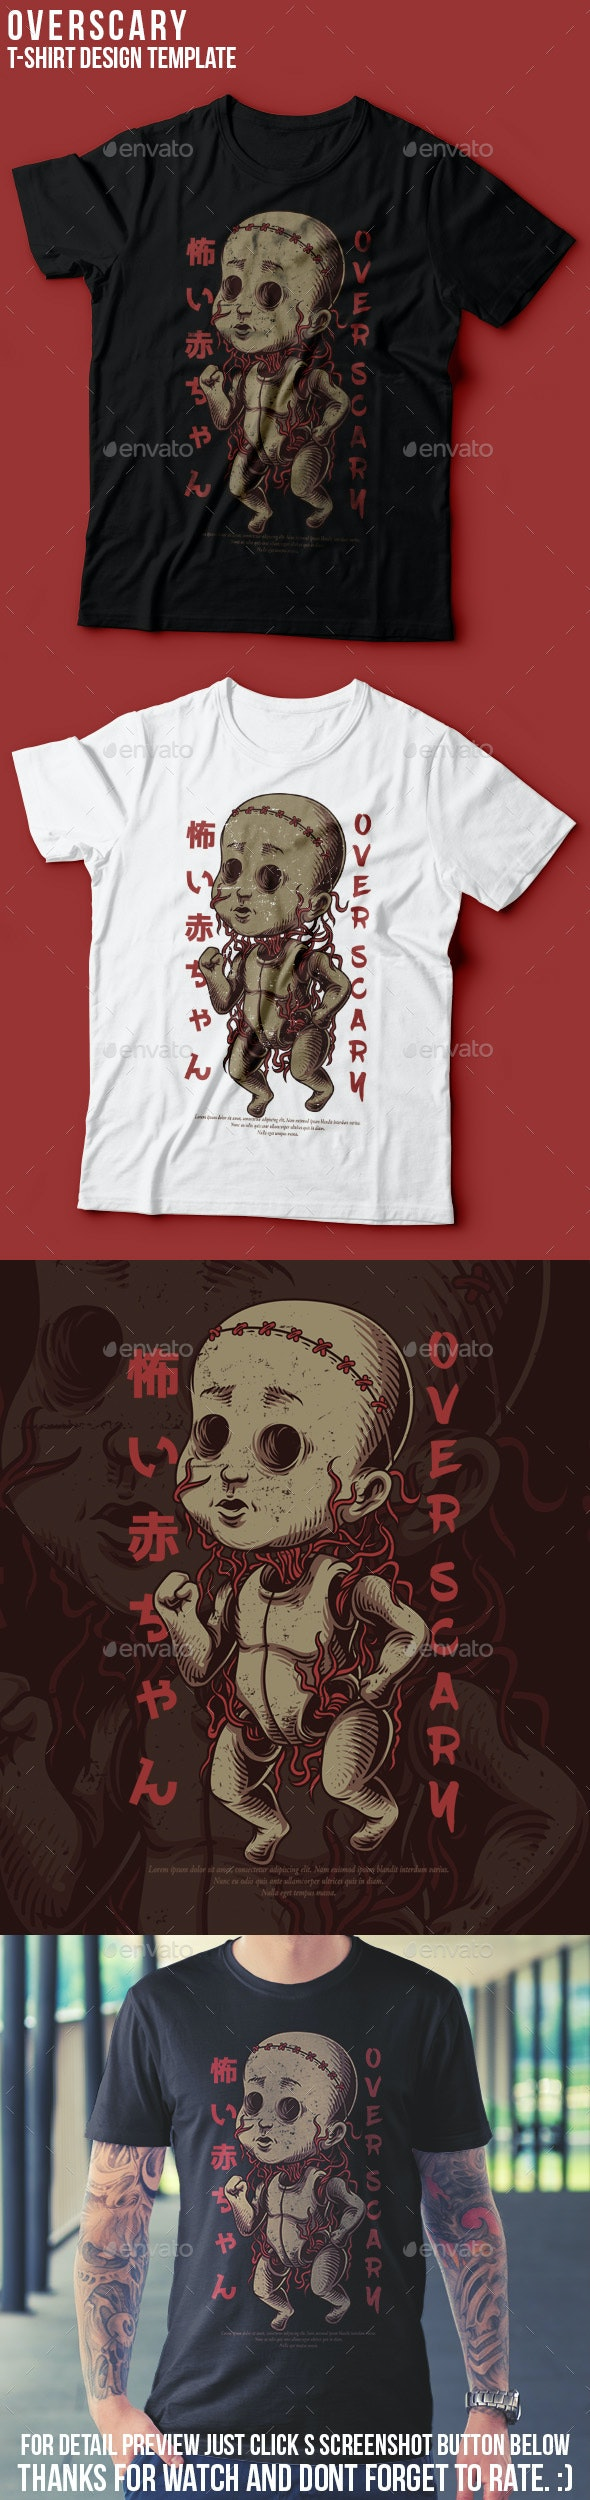 Over Scary T-Shirt Design - Events T-Shirts